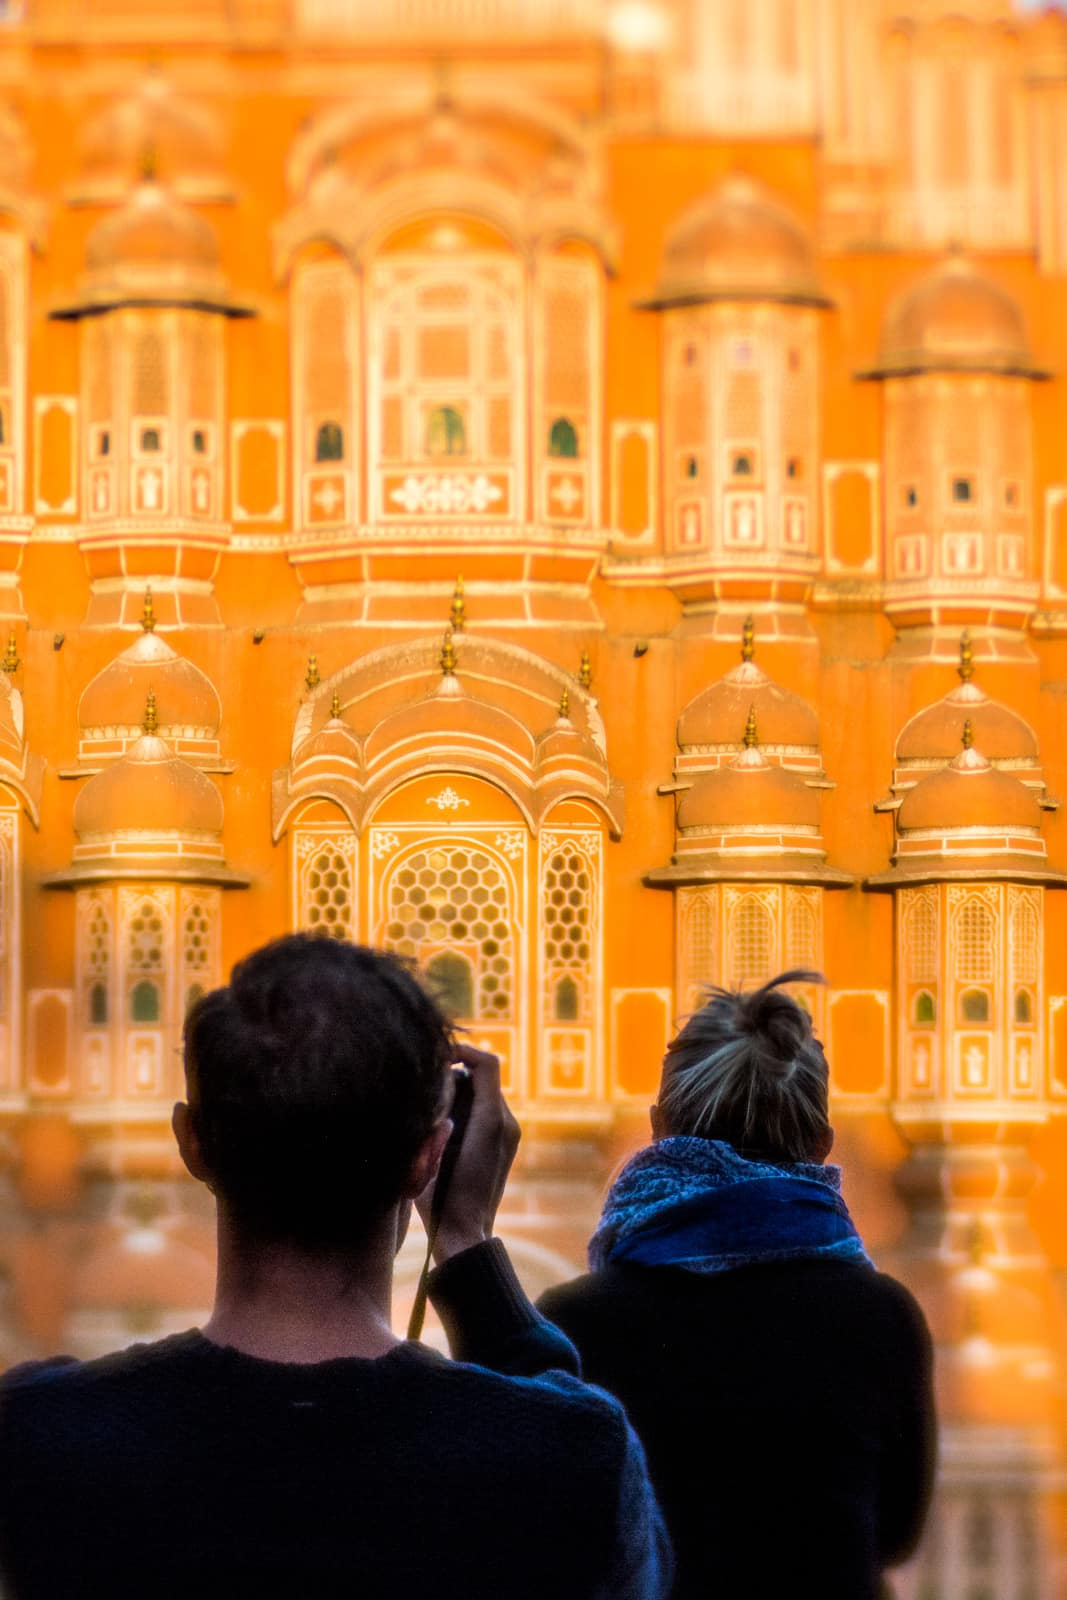 Tourists taking photos in front of the Hawa Mahal in Jaipur, Rajasthan state, India.